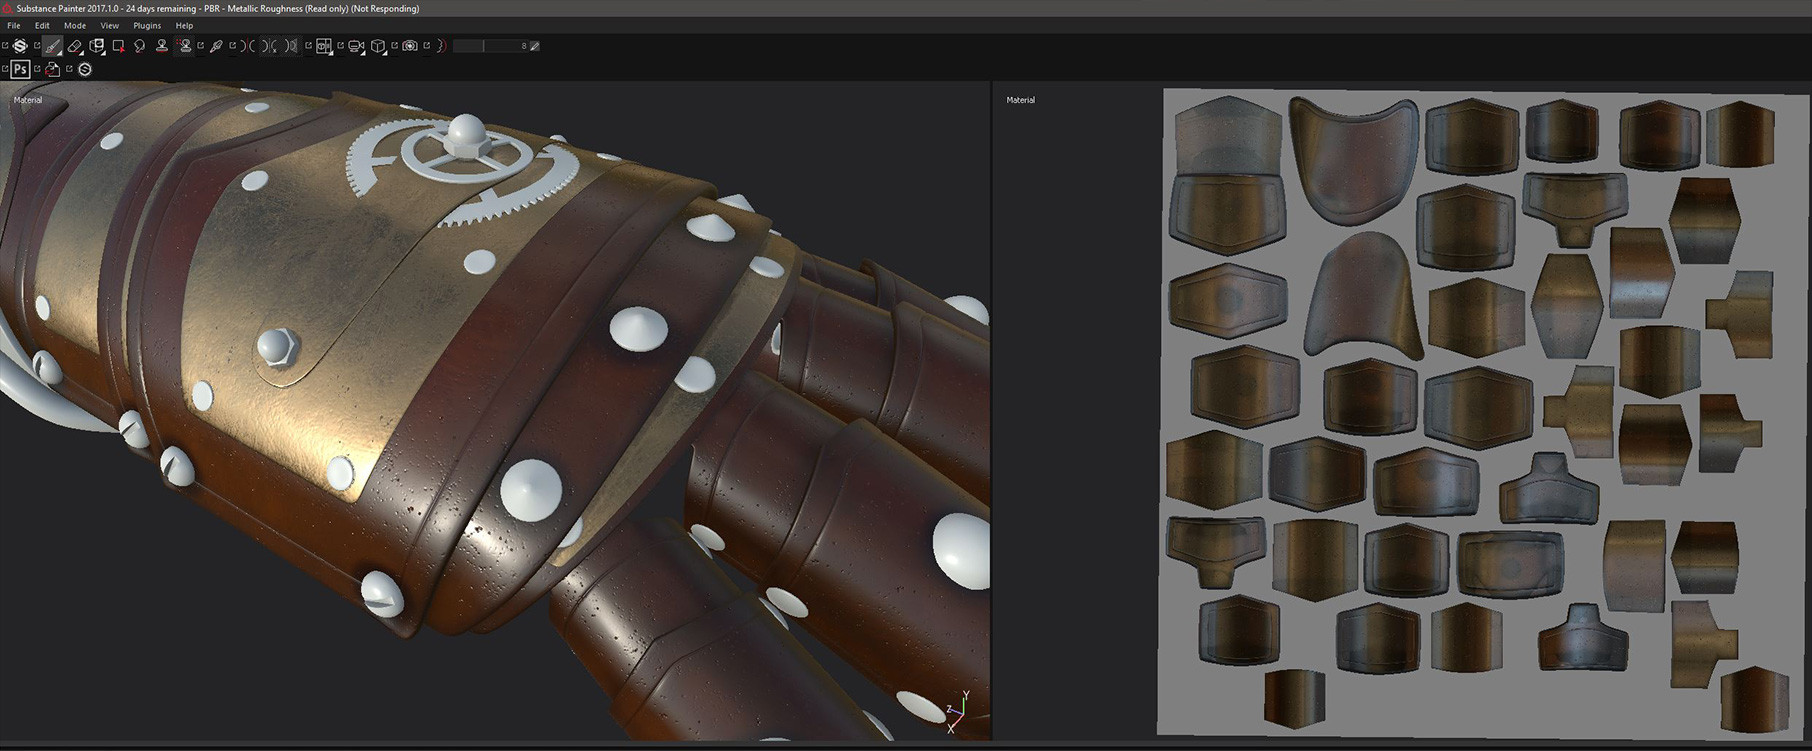 By switching to multiple UV maps in 3D Coat the result in Substance Painter was a much higher resolution. Substance painter created a new Texture Set for each section (based on materials that were automatically created for each individual map in 3D Coat).